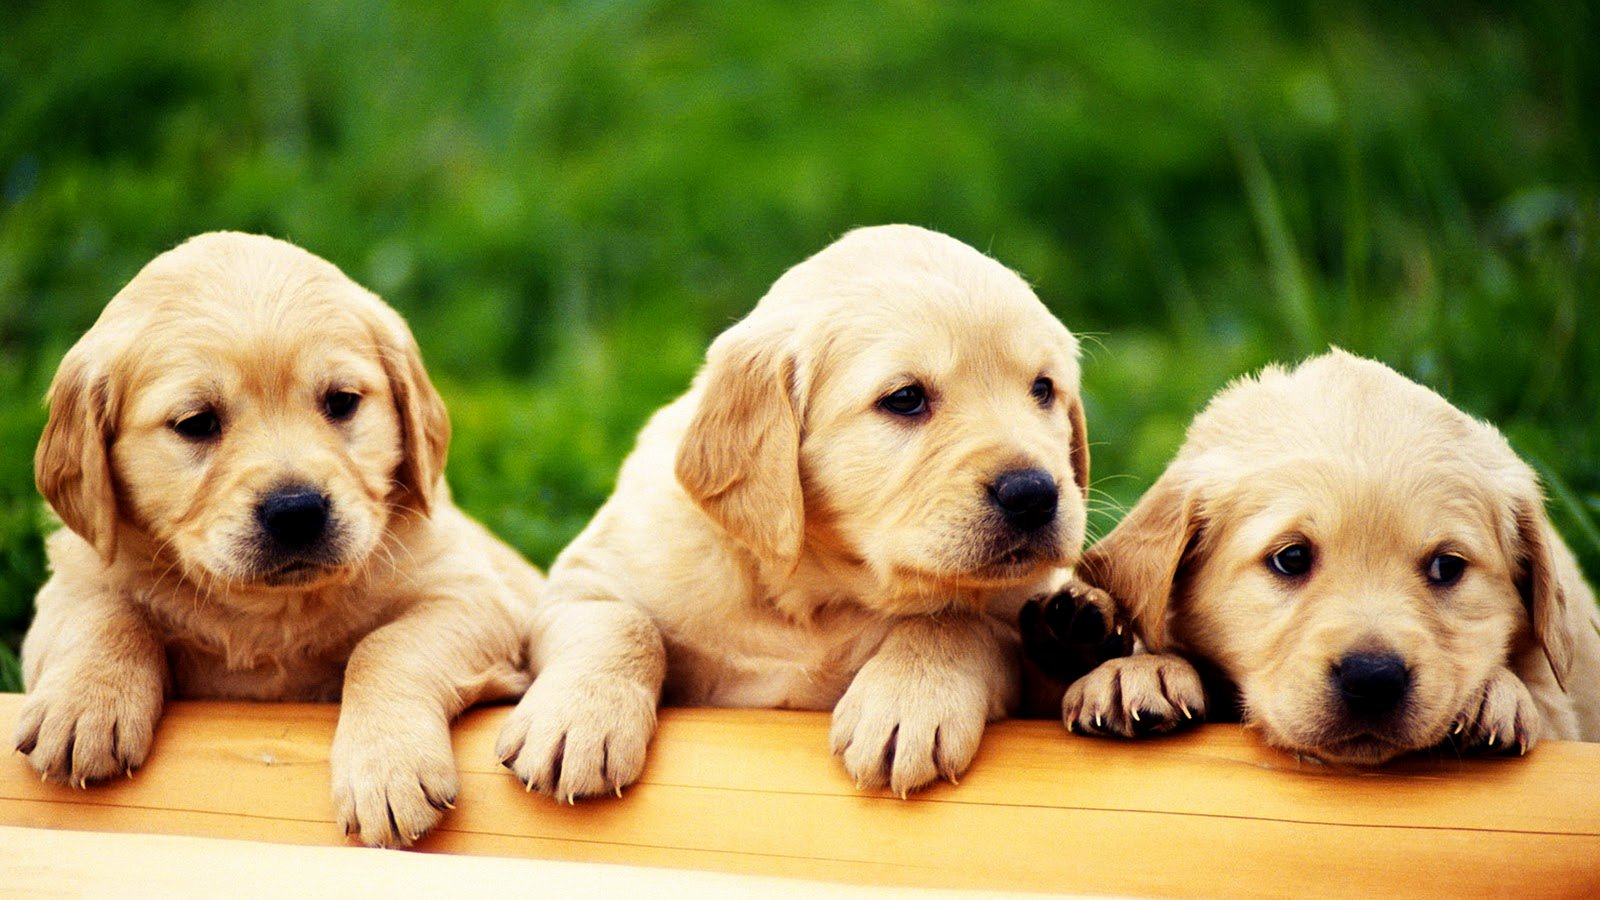 Dog Backgrounds for Desktop Luxury Cute Puppies Hd Wallpapers Collection Desktop Wallpaper